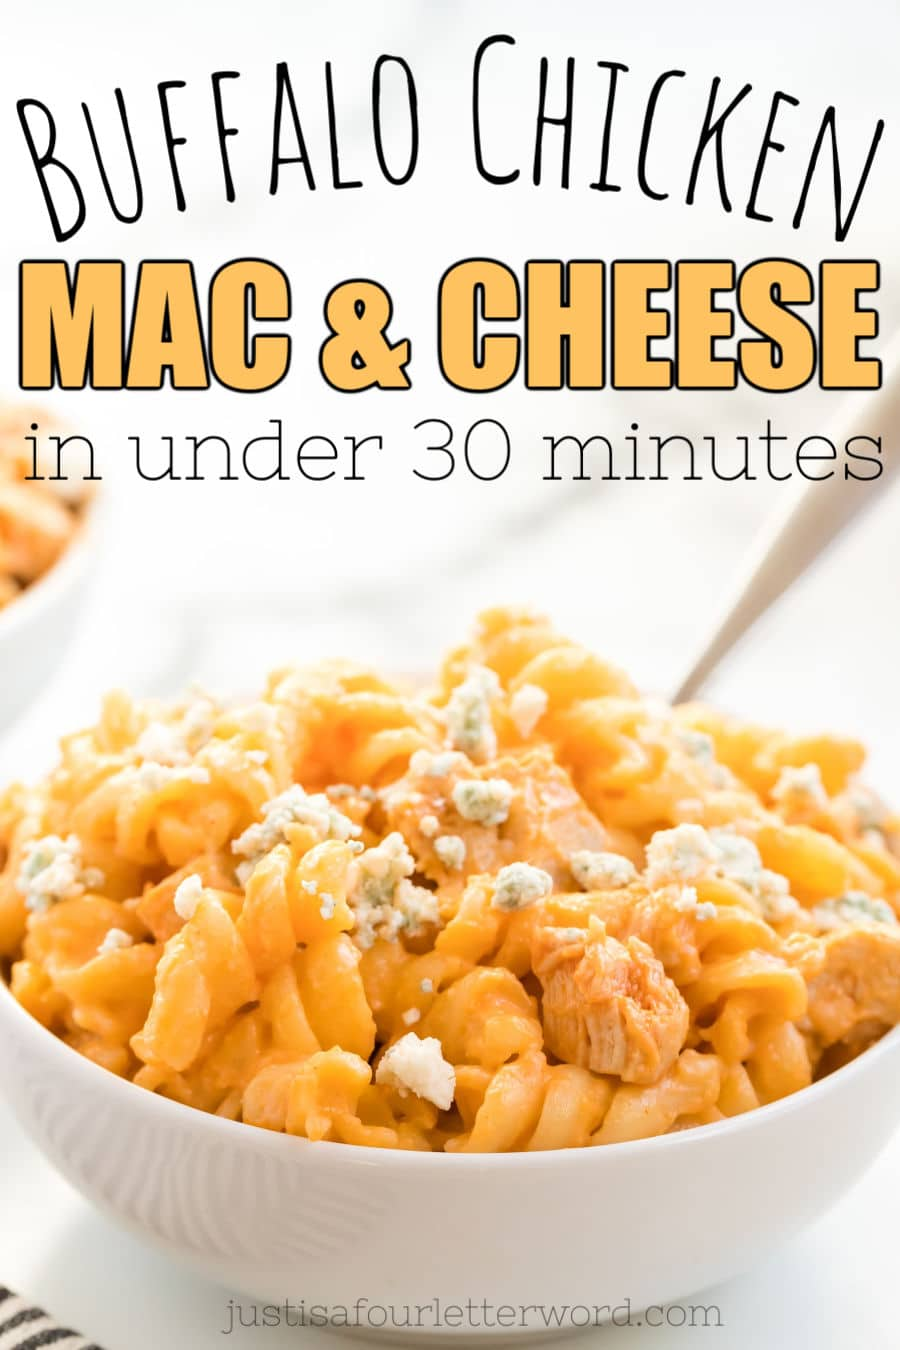 Buffalo Chicken Mac & Cheese